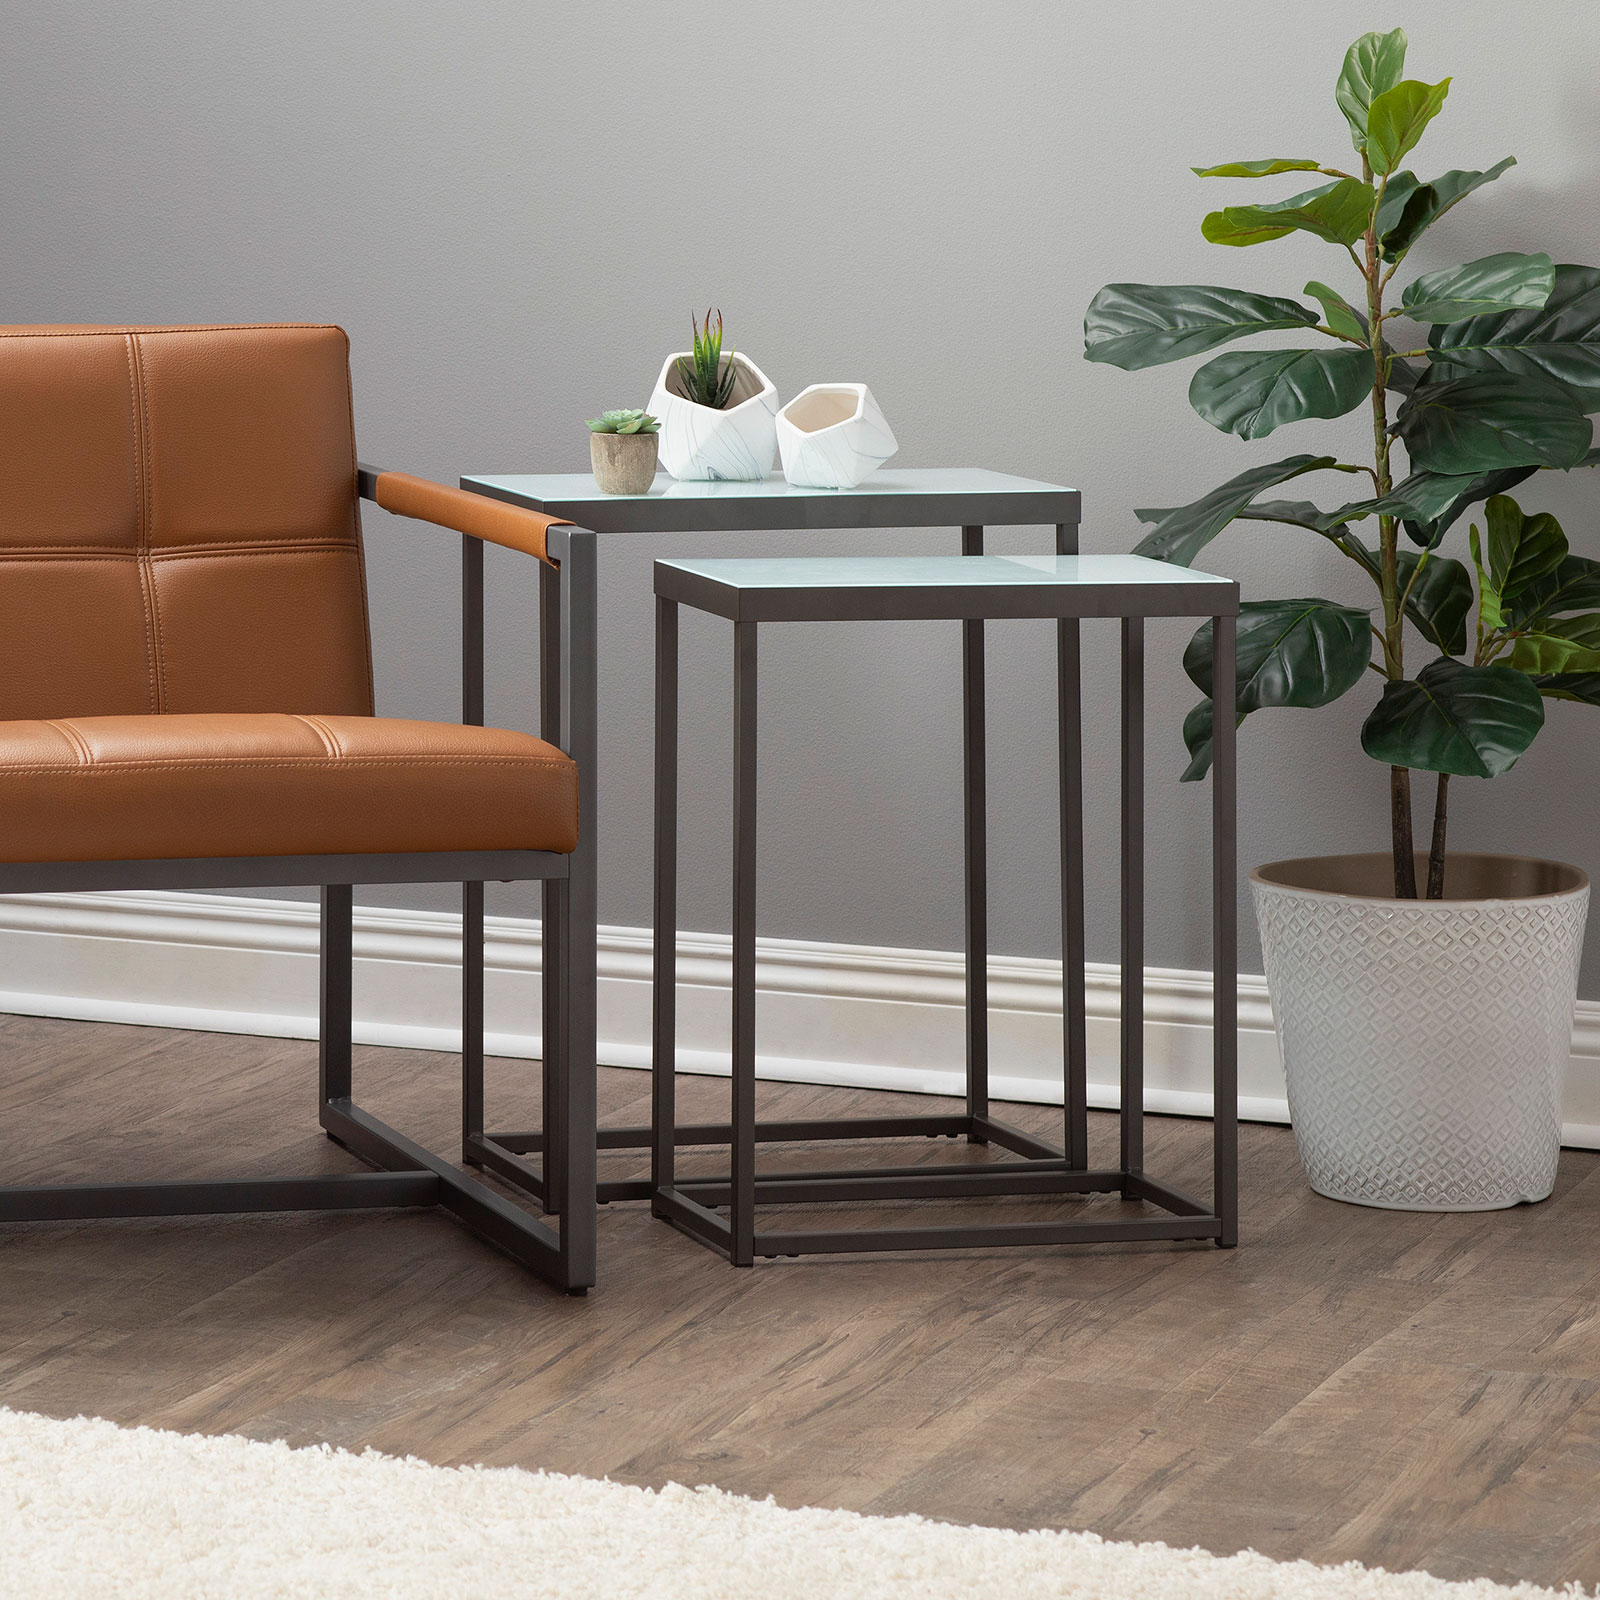 71052-Camber-Side-Table-RS1c